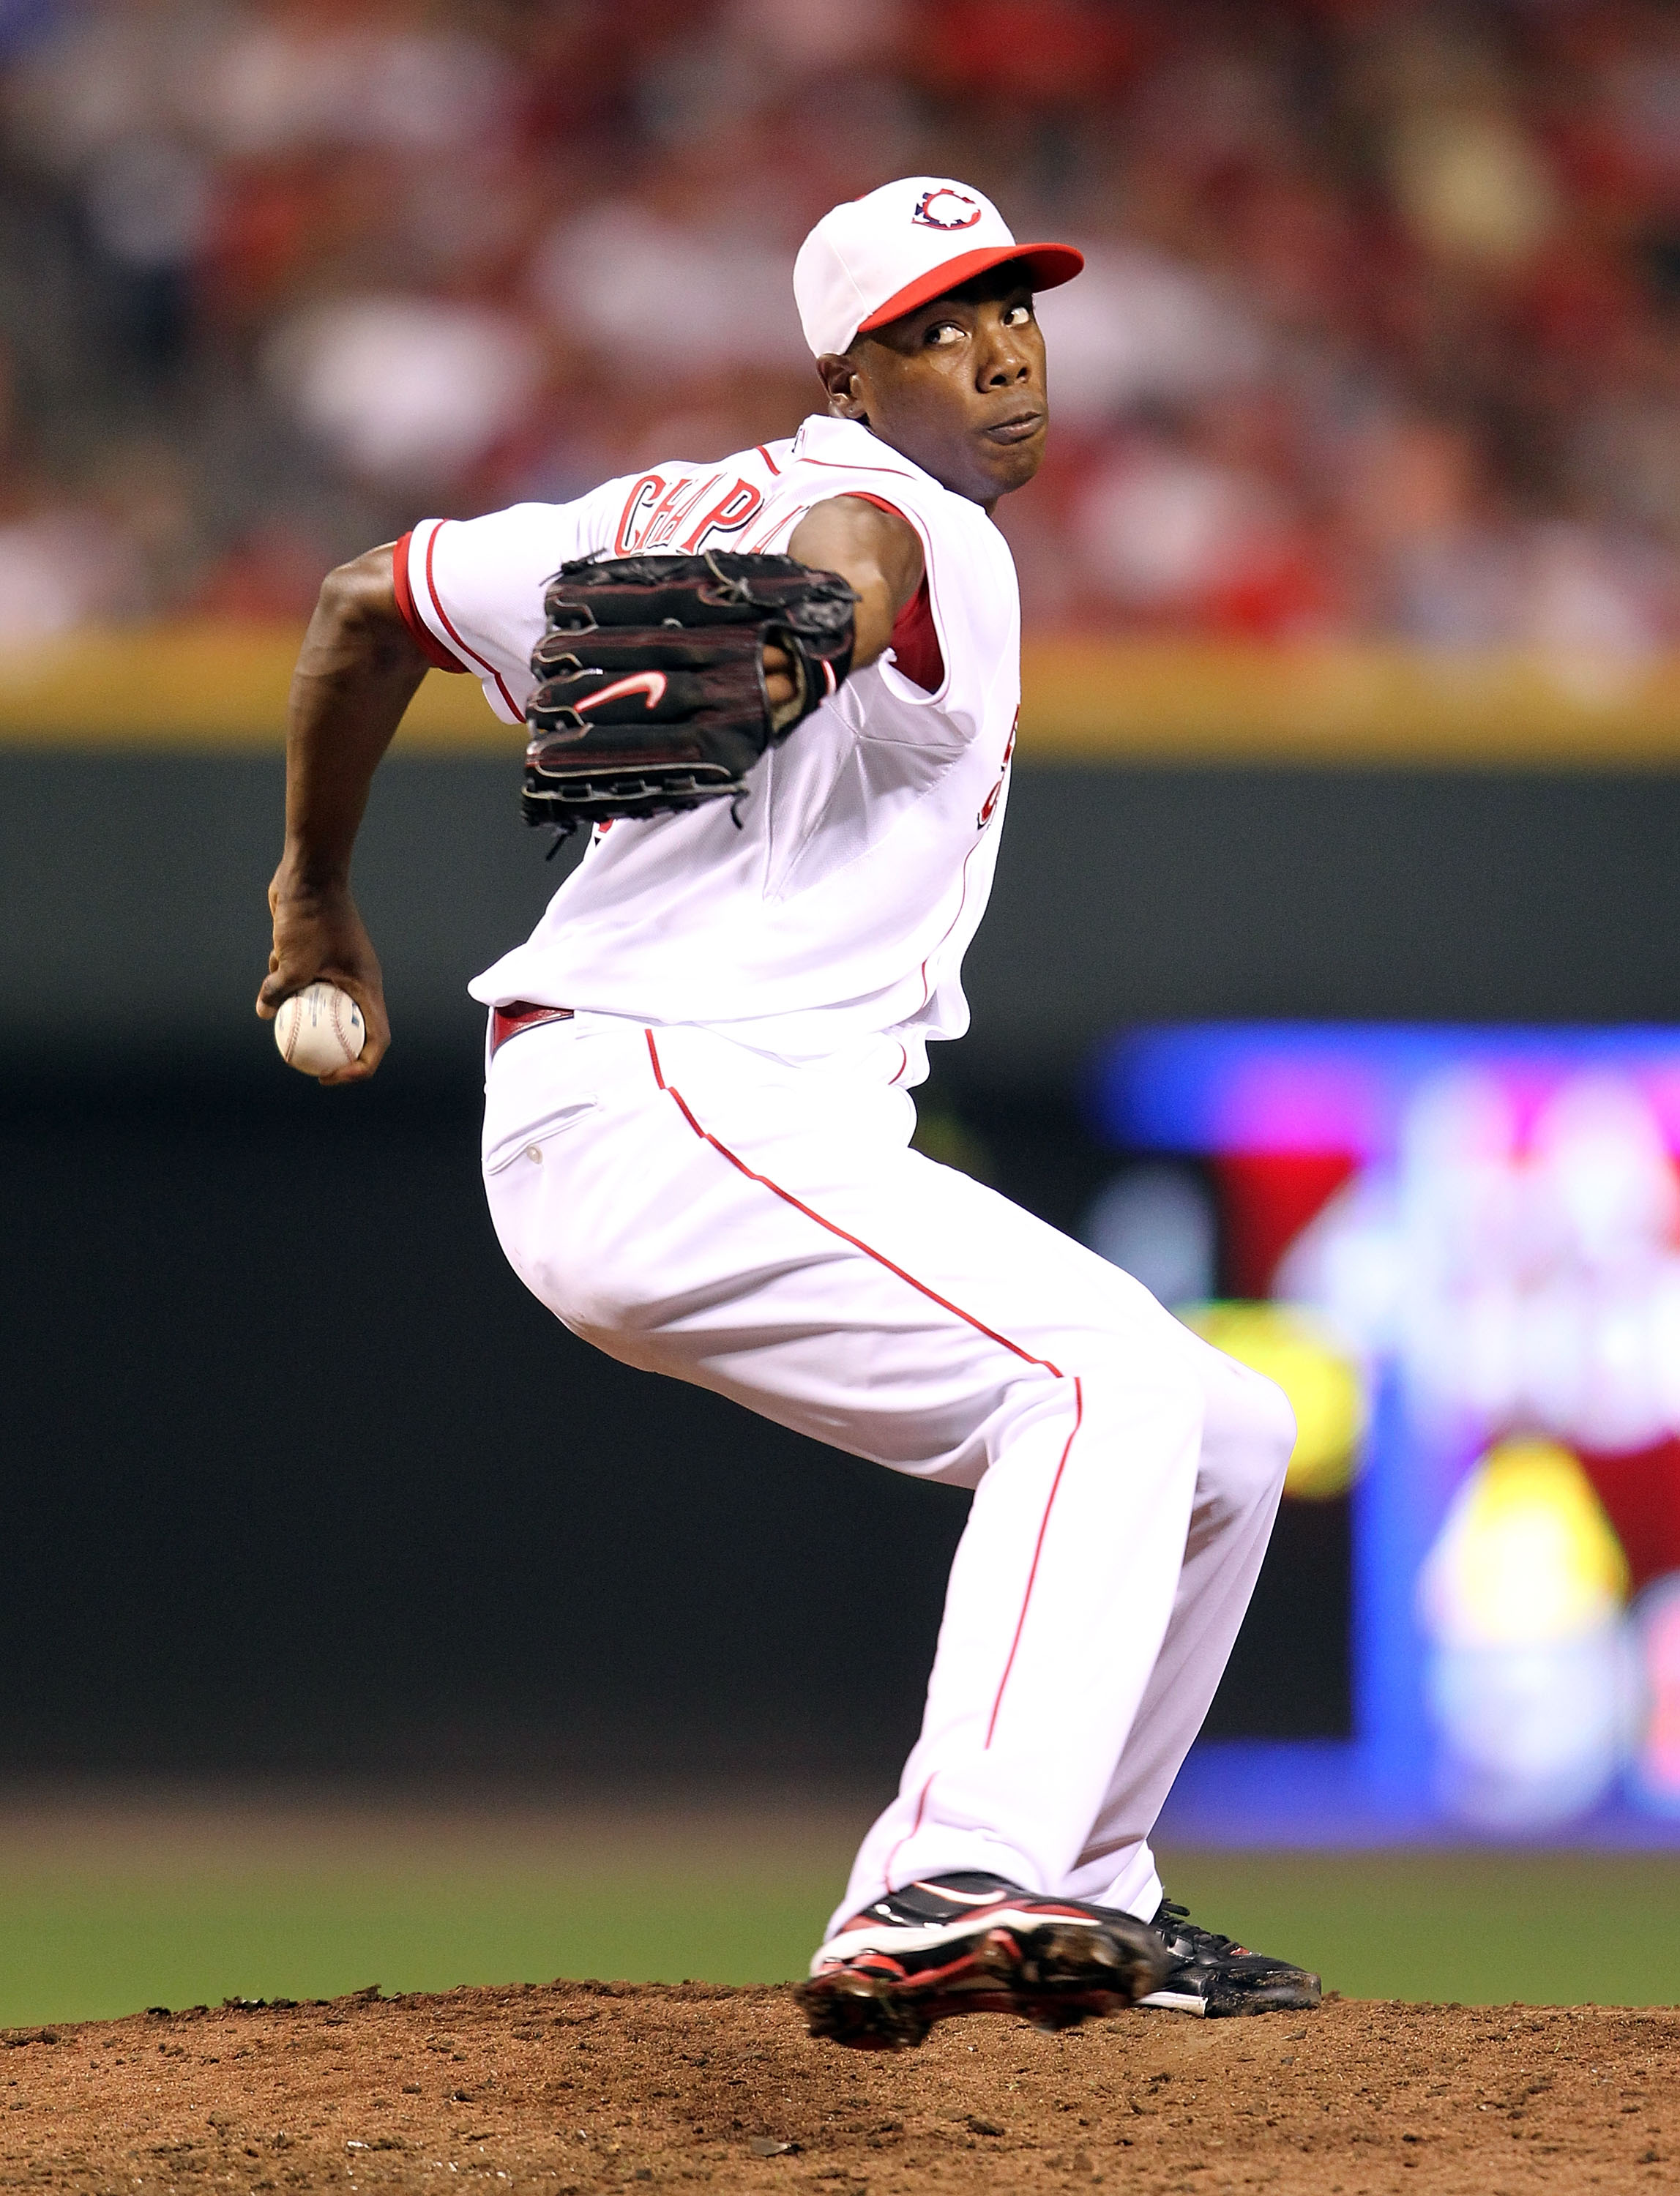 CINCINNATI - SEPTEMBER 11:  Aroldis Chapman #54 of the Cincinnati Reds throws a pitch during the game against the Pittsburg Pirates at Great American Ball Park on September 11, 2010 in Cincinnati, Ohio. The Reds won 5-4.  (Photo by Andy Lyons/Getty Images